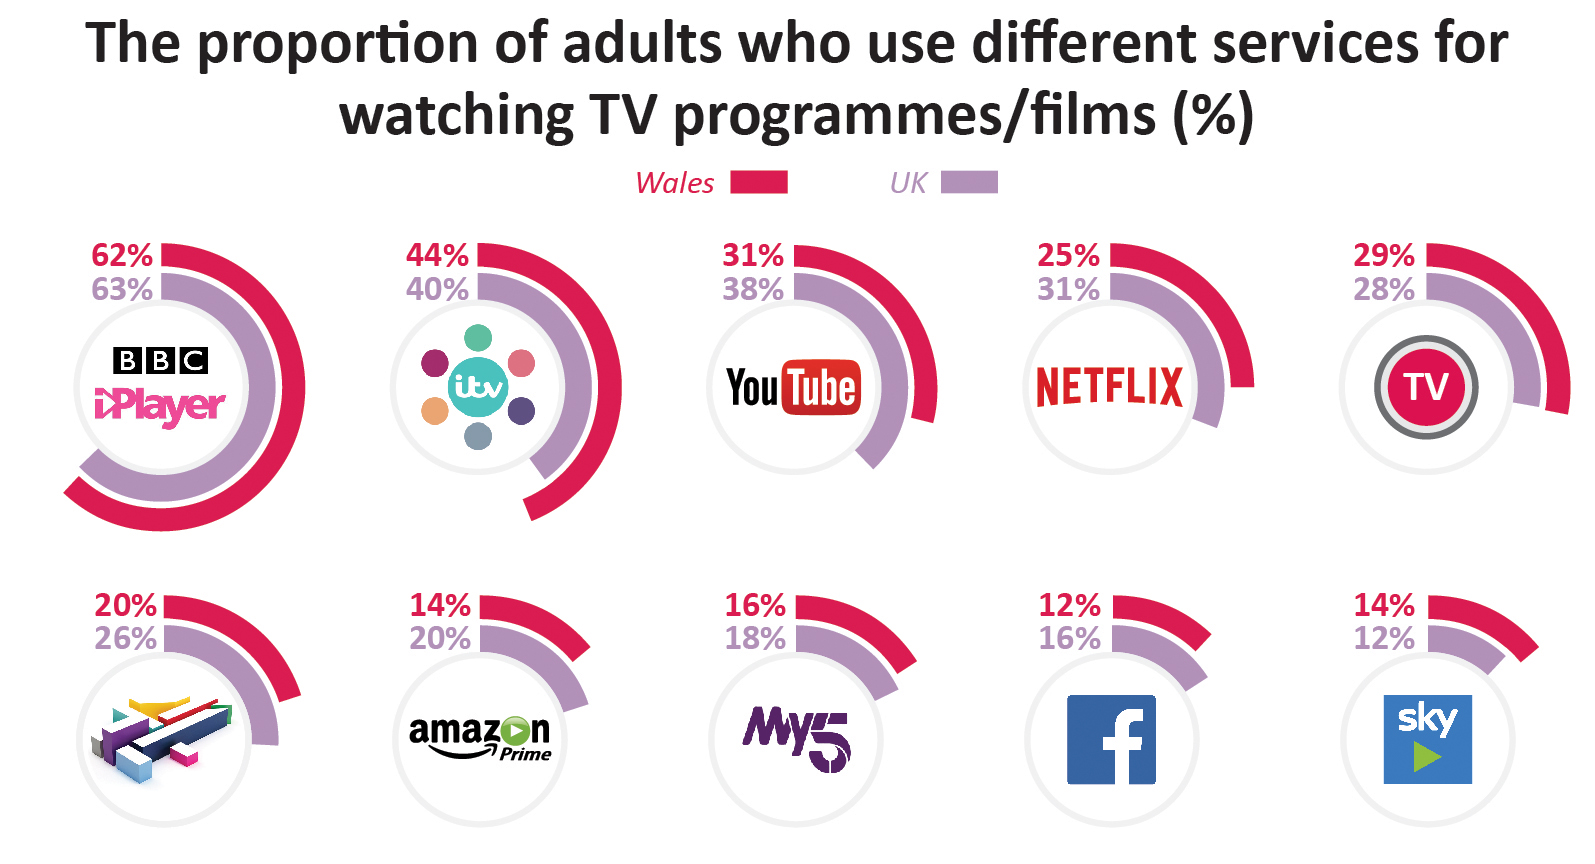 62% of adults in Wales use BBC iPlayer, compared to 63% across the UK